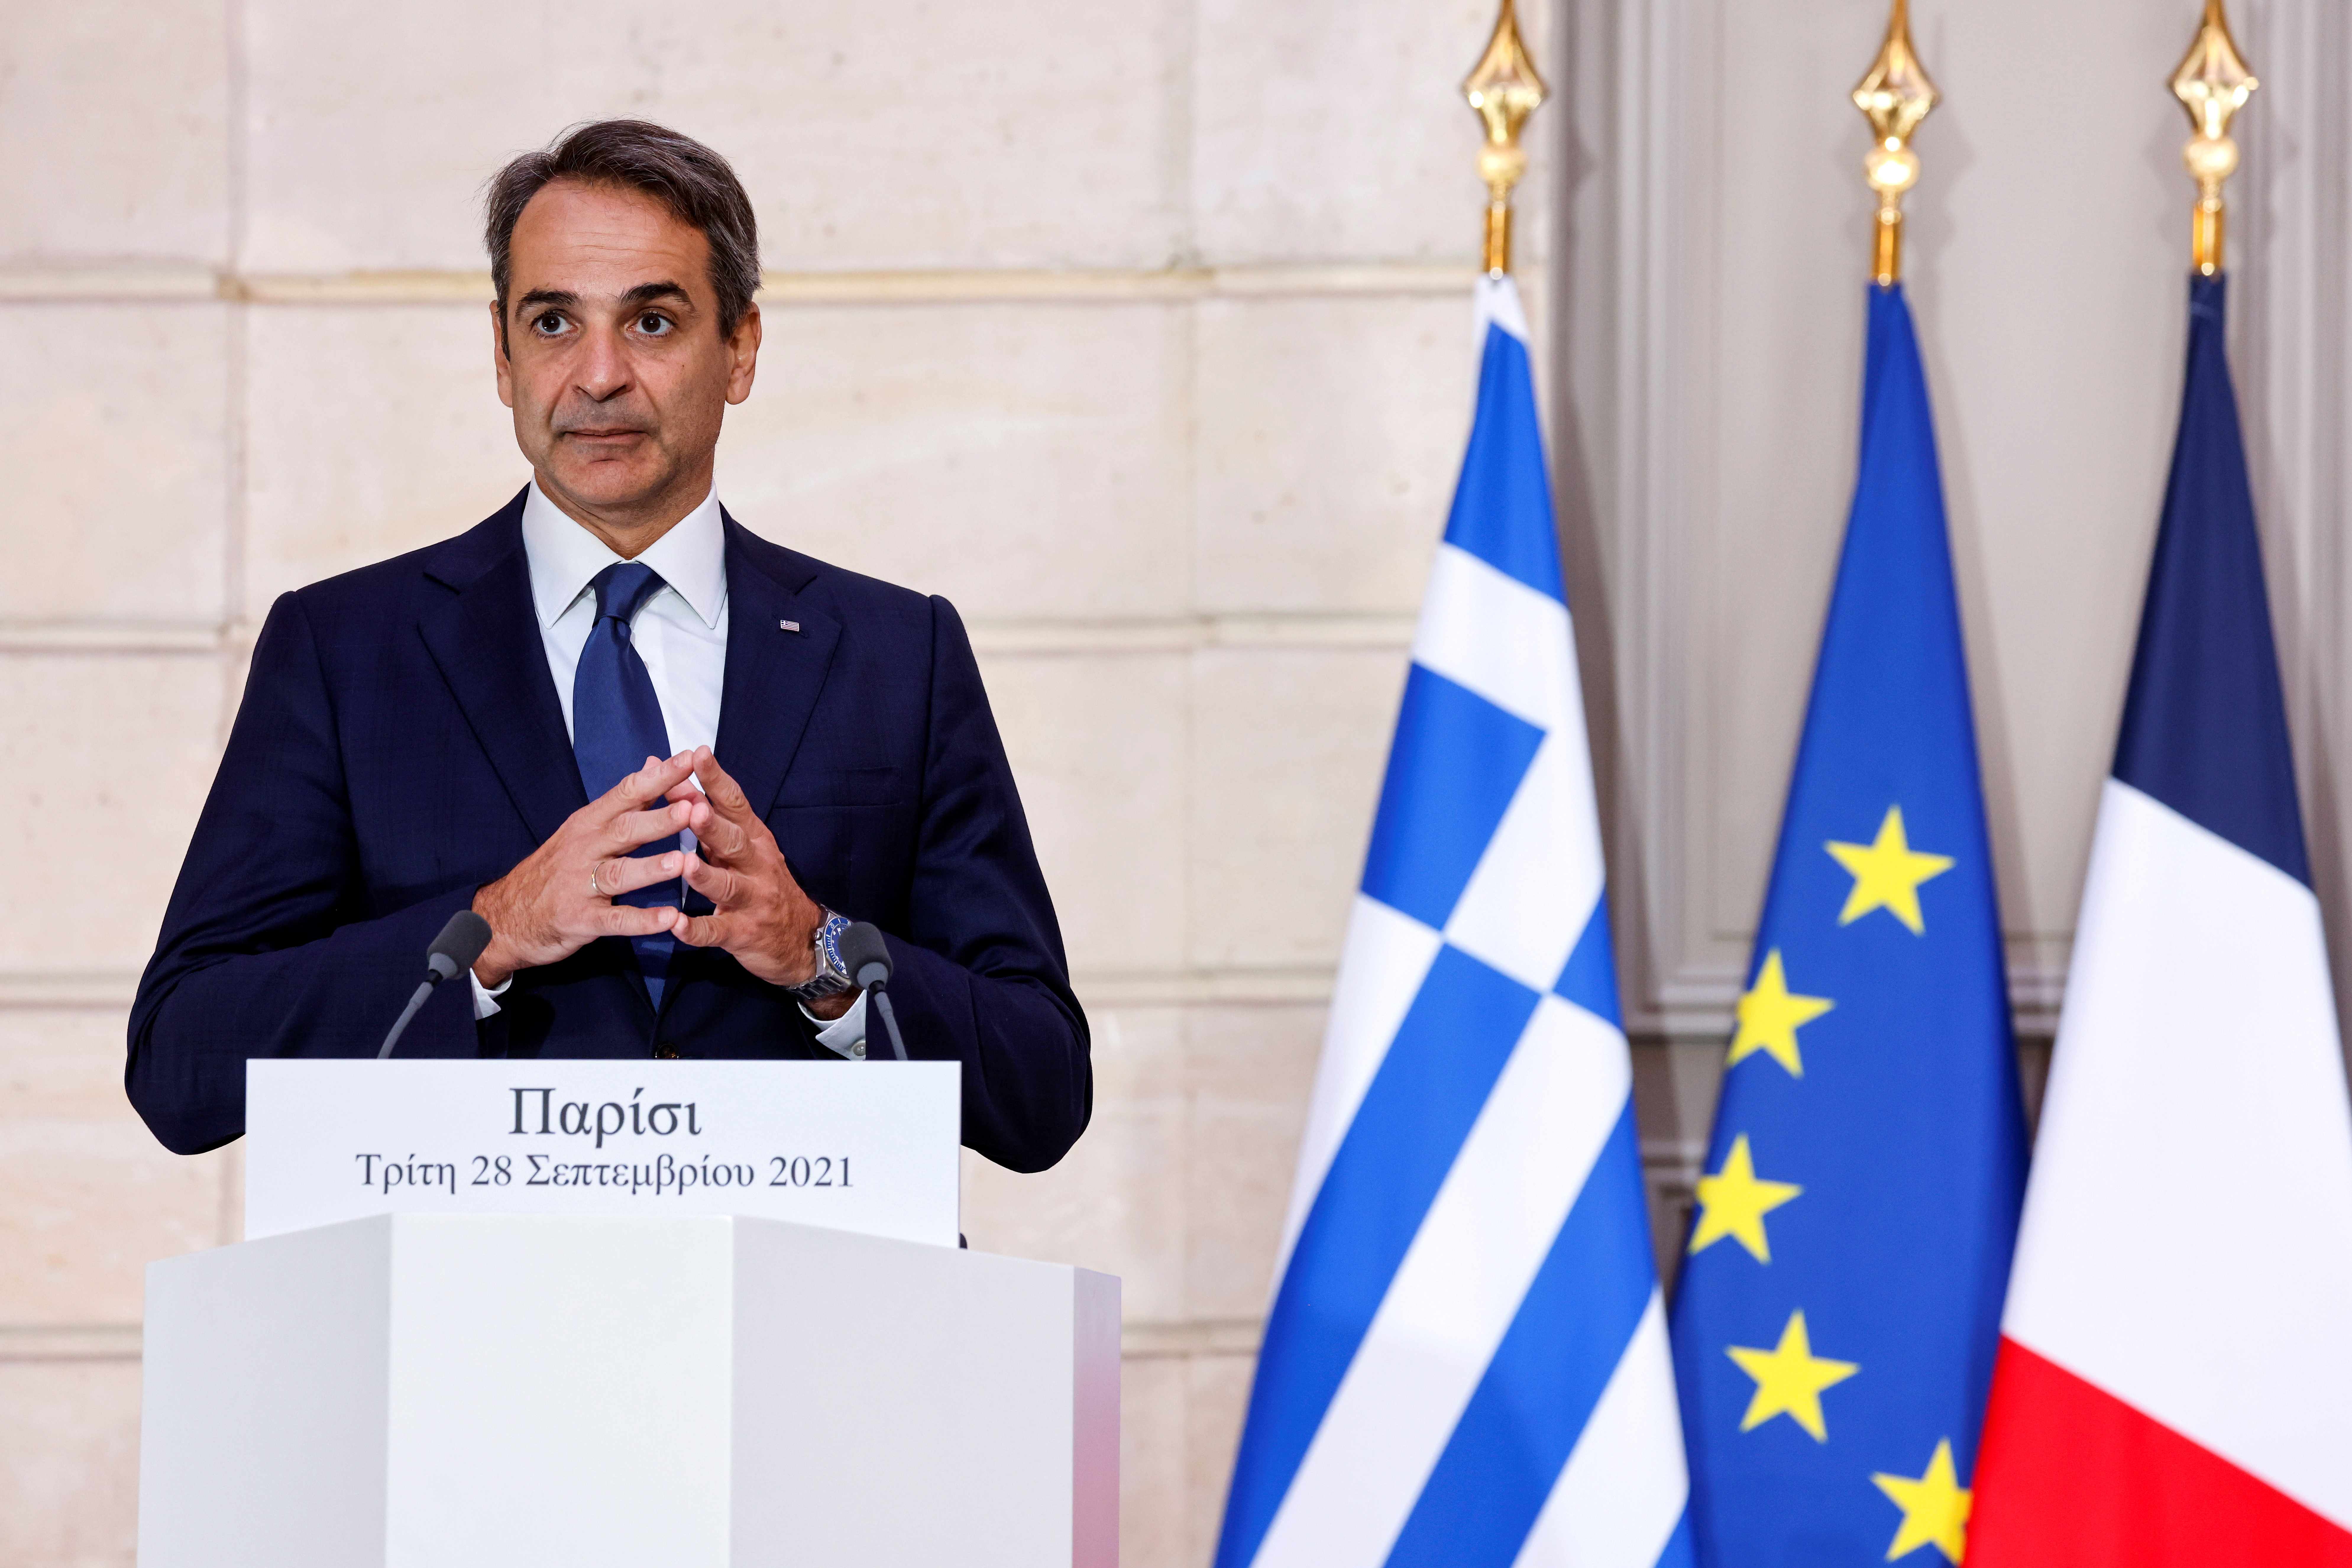 Greek Prime Minister Kyriakos Mitsotakis speaks as the French President listens on, during a signing ceremony of a new defence deal at The Elysee Palace in Paris, France September 28, 2021. Ludovic Marin/Pool via REUTERS